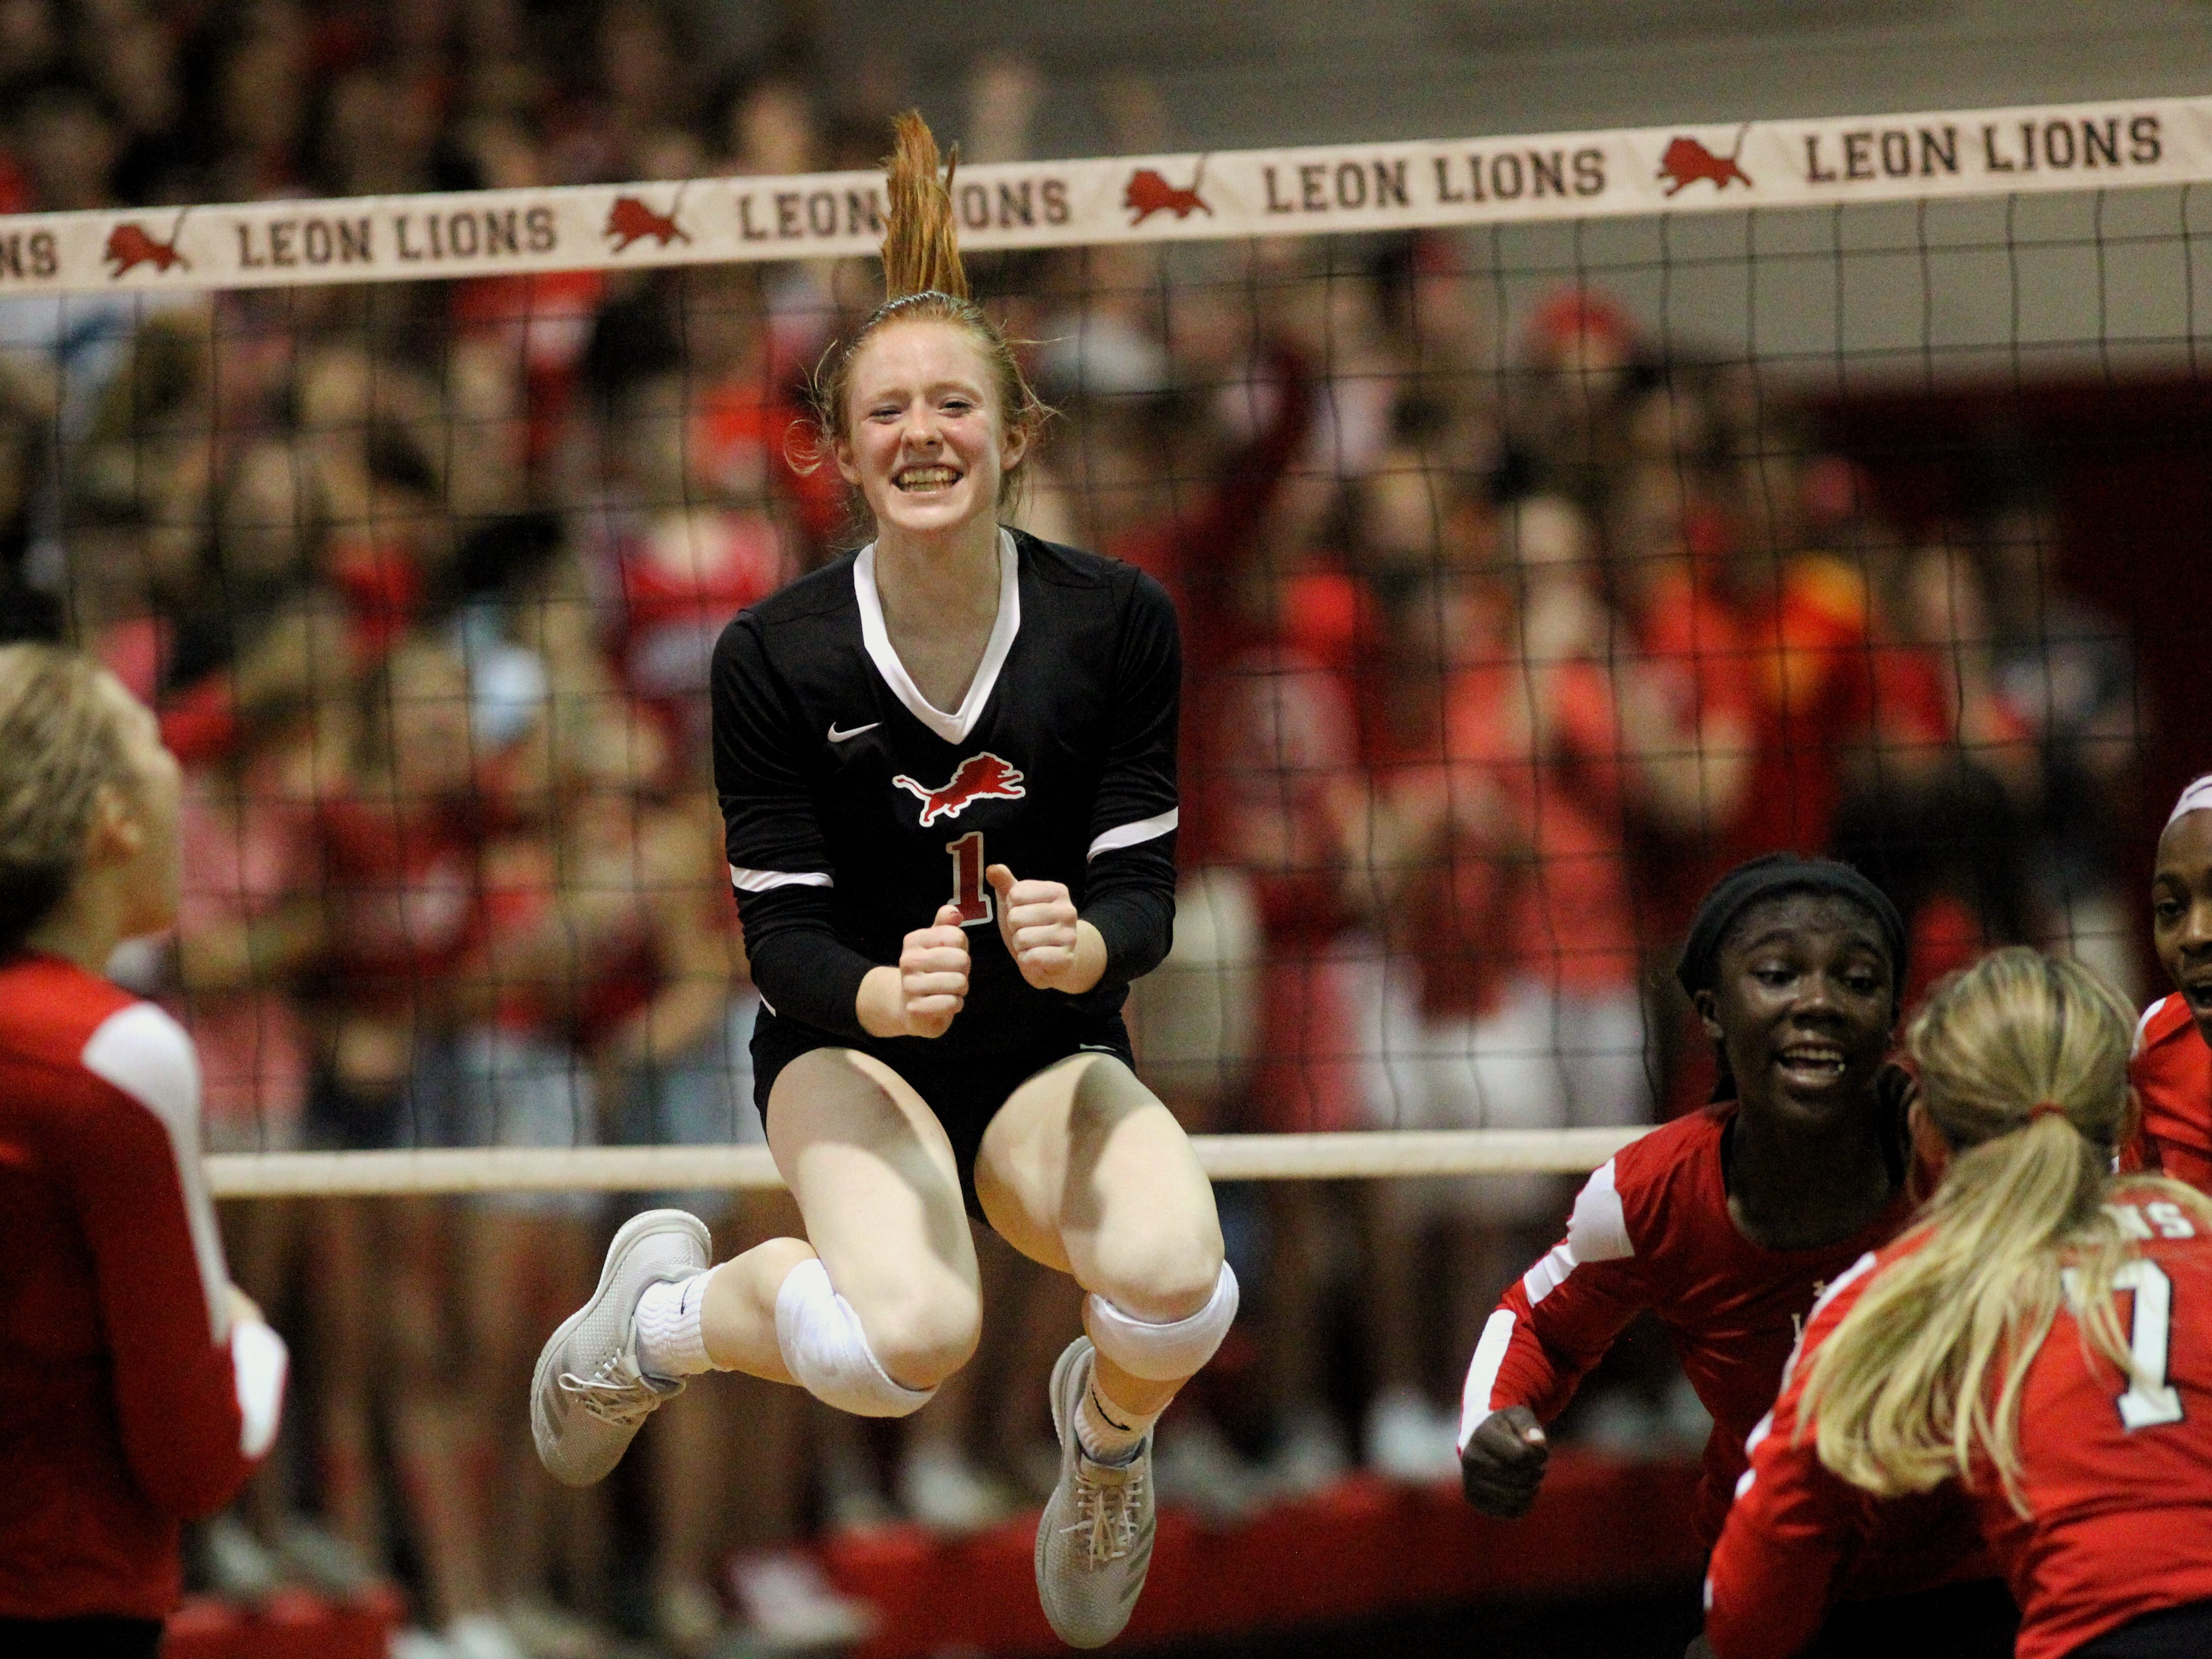 Leon High senior libero Kate Powell jumps for joy after the Lions' volleyball team secured a 3-0 win over district rival Chiles High during a regular-season game on Thursday, Sept. 6, 2018. Leon went on to enjoy a 27-4 season and a fourth-straight appearance in the Class 8A state semifinals.